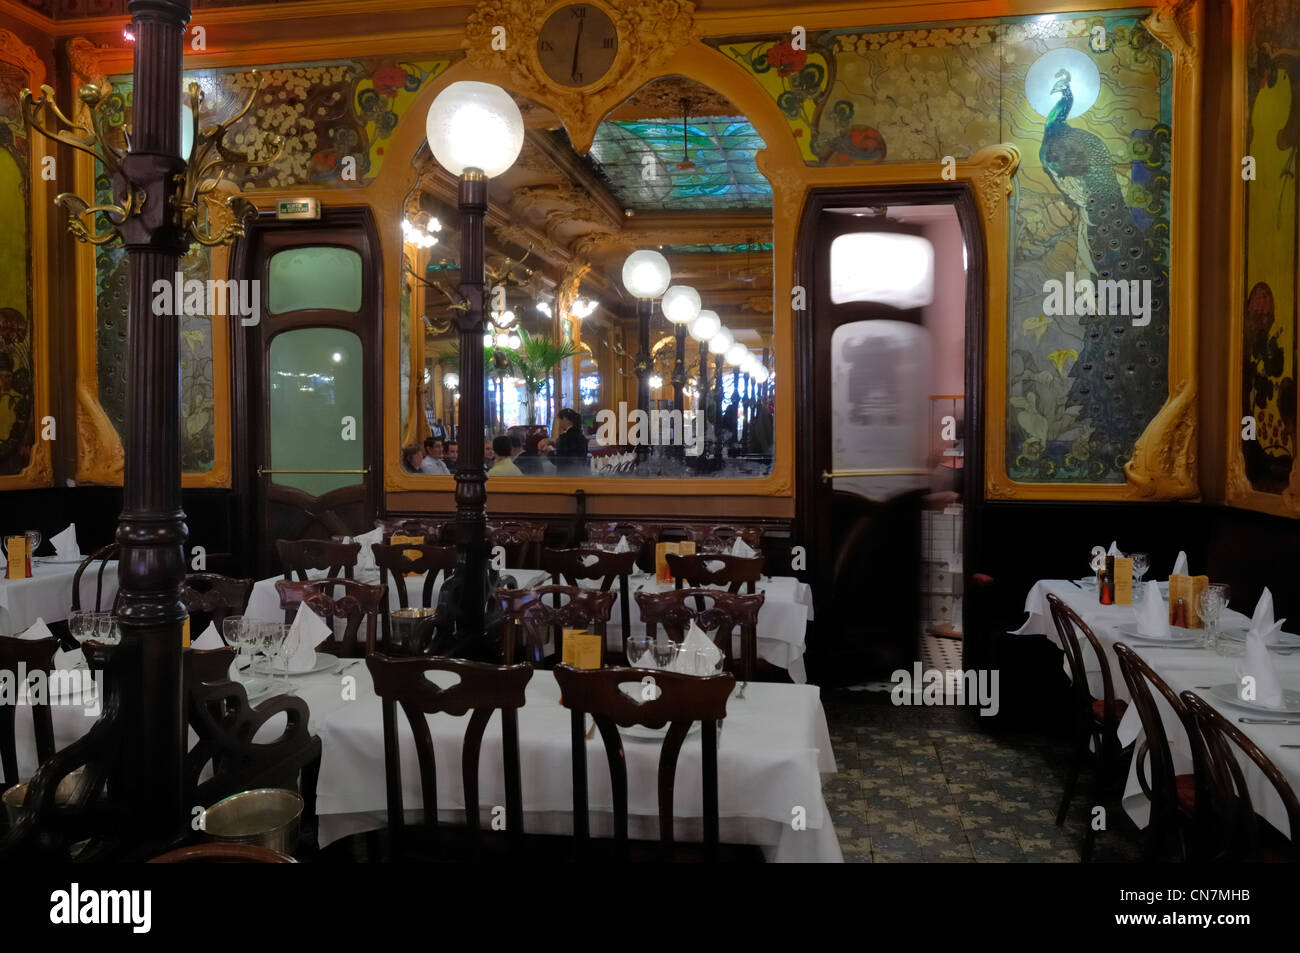 frankreich paris art deco restaurant chez julien stockfoto bild 47498343 alamy. Black Bedroom Furniture Sets. Home Design Ideas